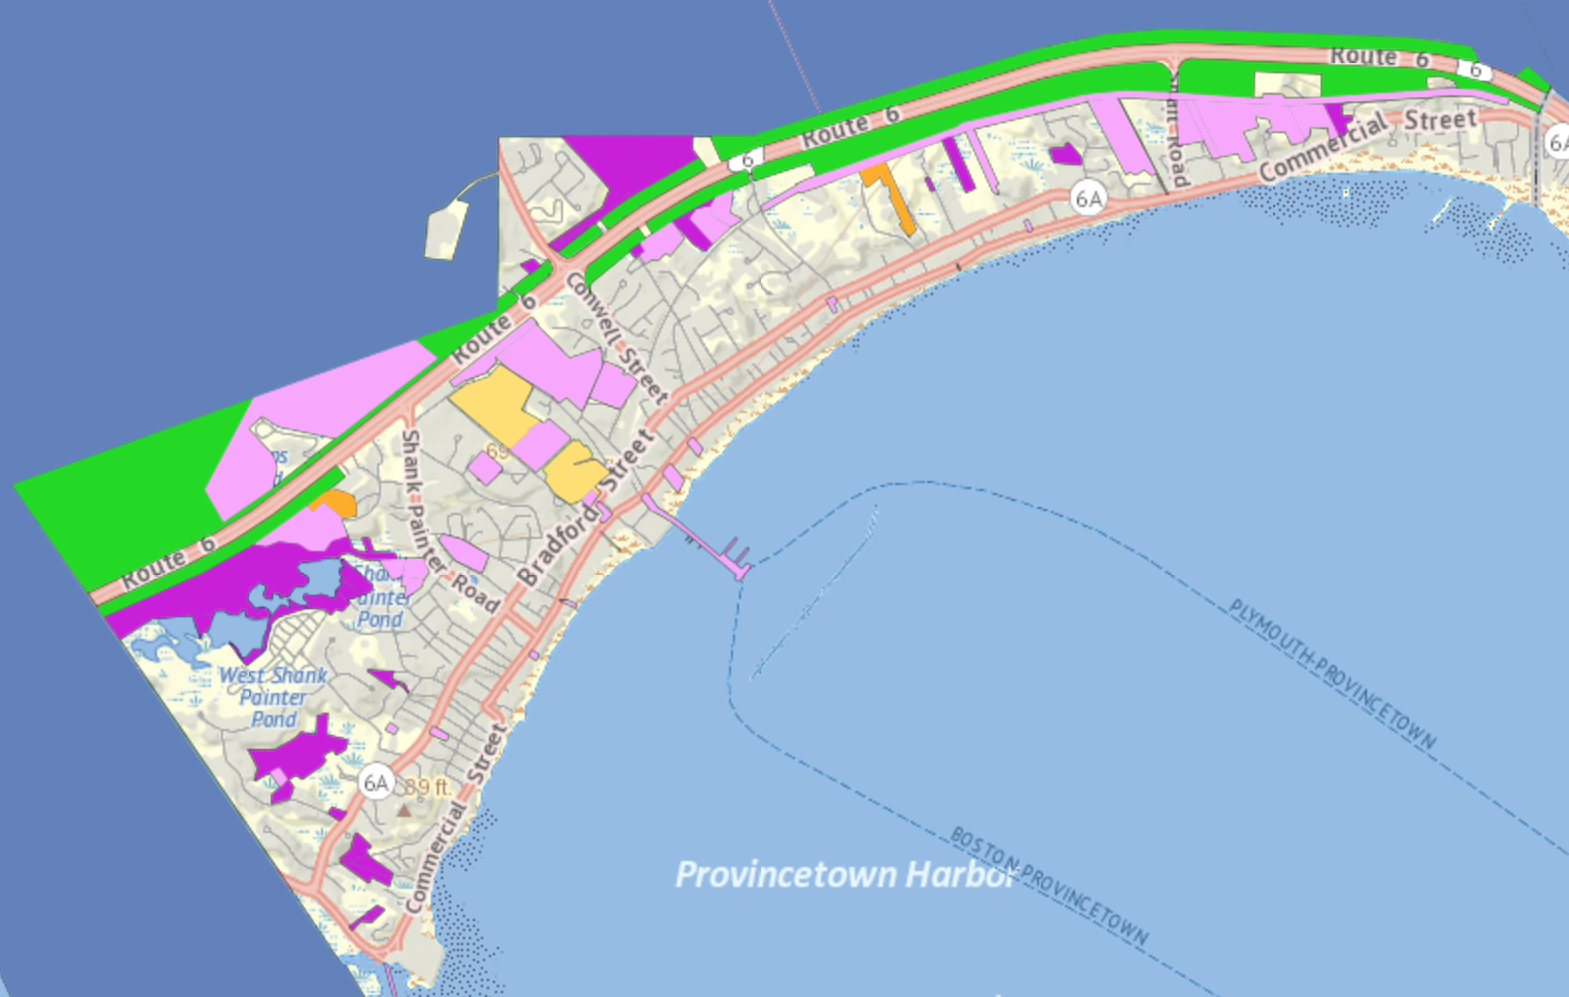 Map of Conservation Trust-owned and Town Protected Lands in Provincetown.